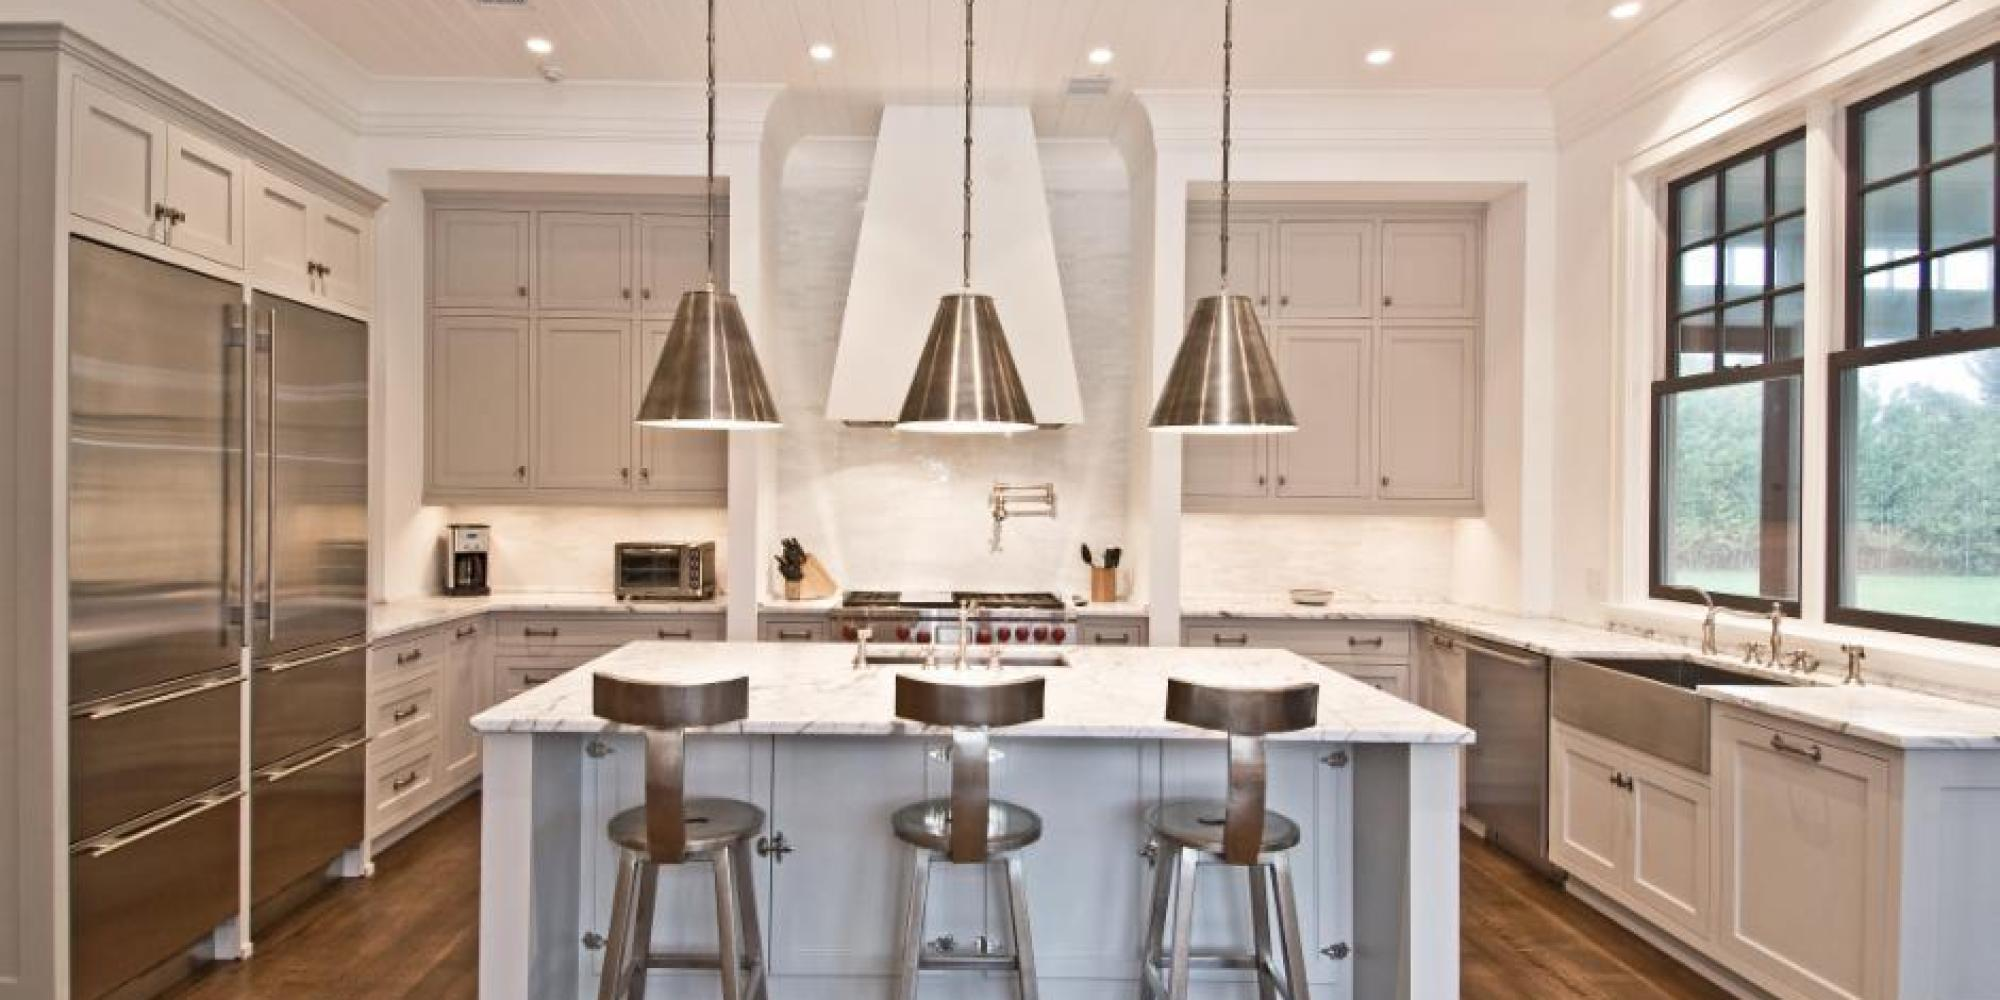 The Best Paint Colors For Every Type Of Kitchen HuffPost - Neutral kitchen cabinet colors